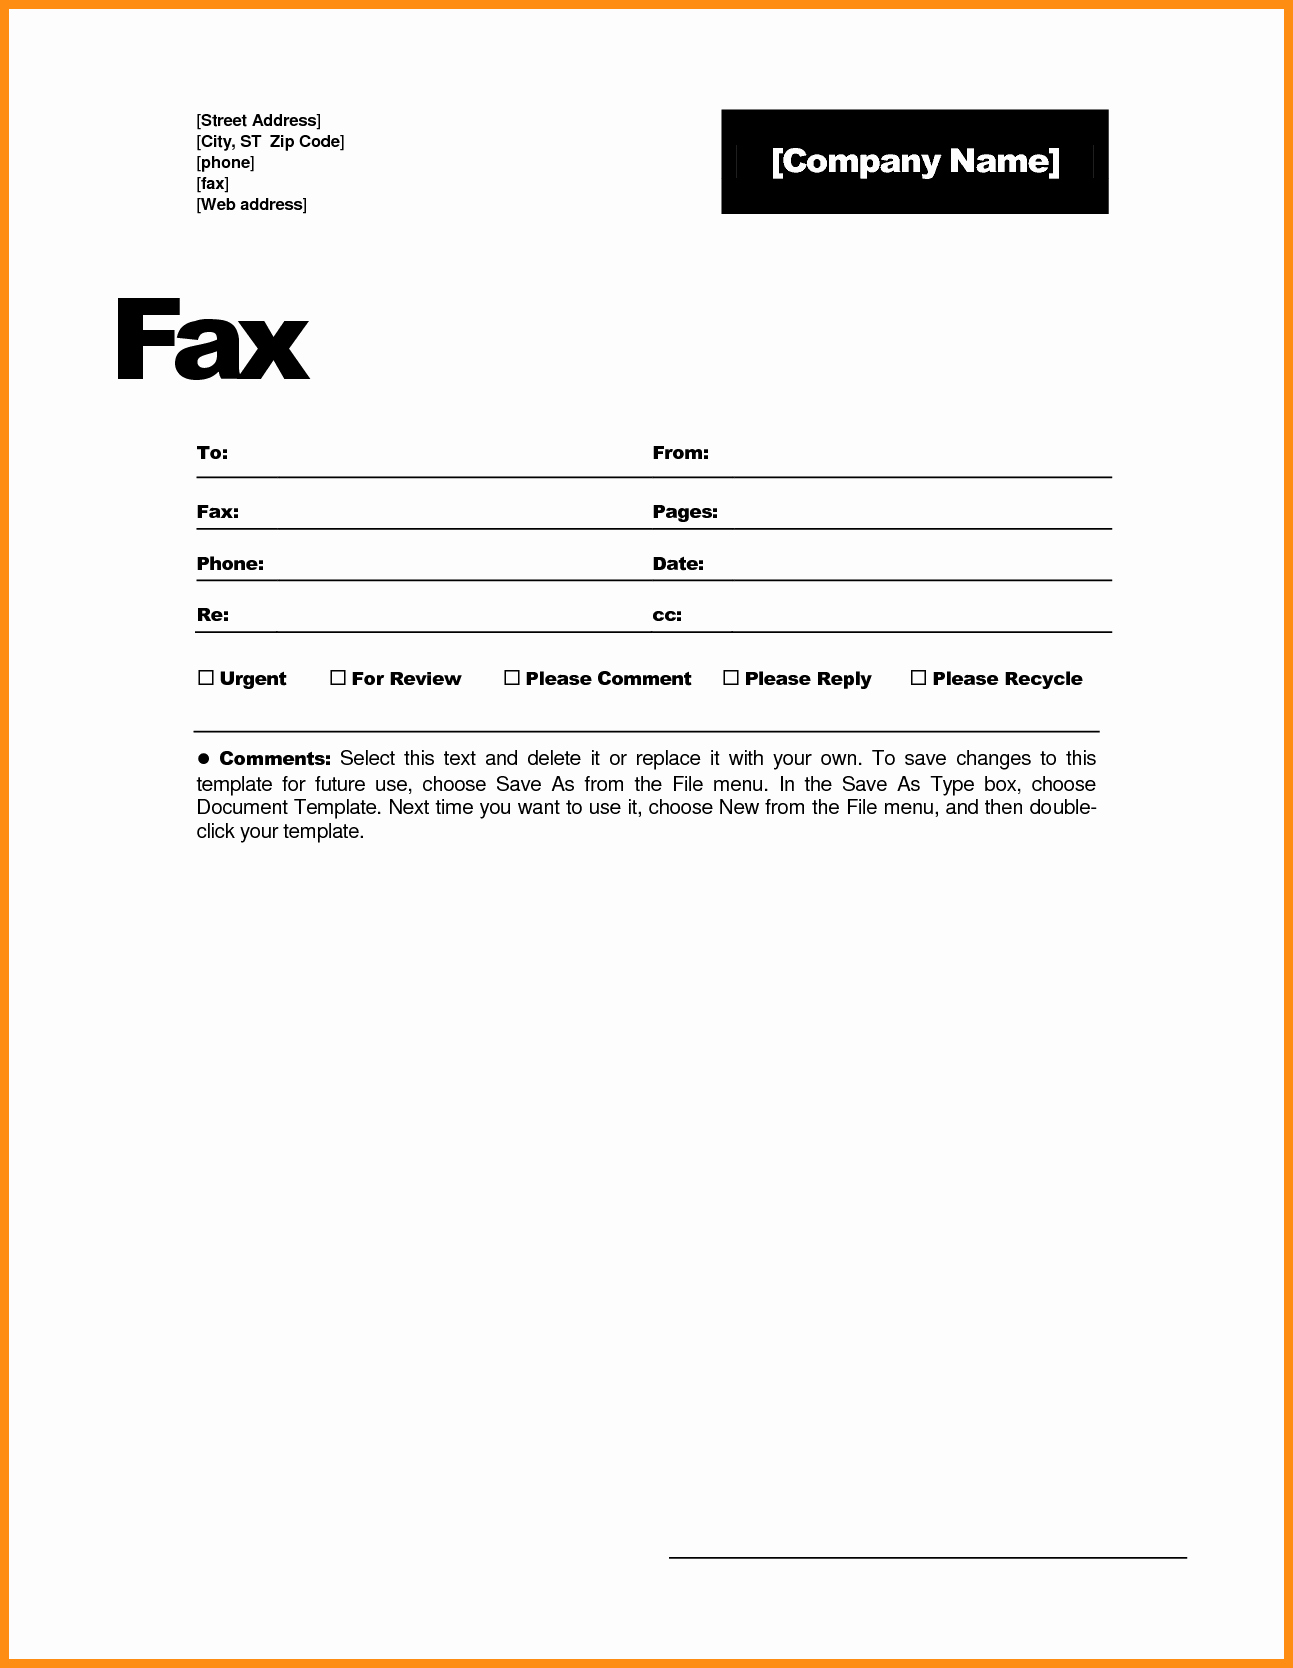 Free Fax Cover Page Template Elegant 6 Free Fax Cover Sheet Template Word